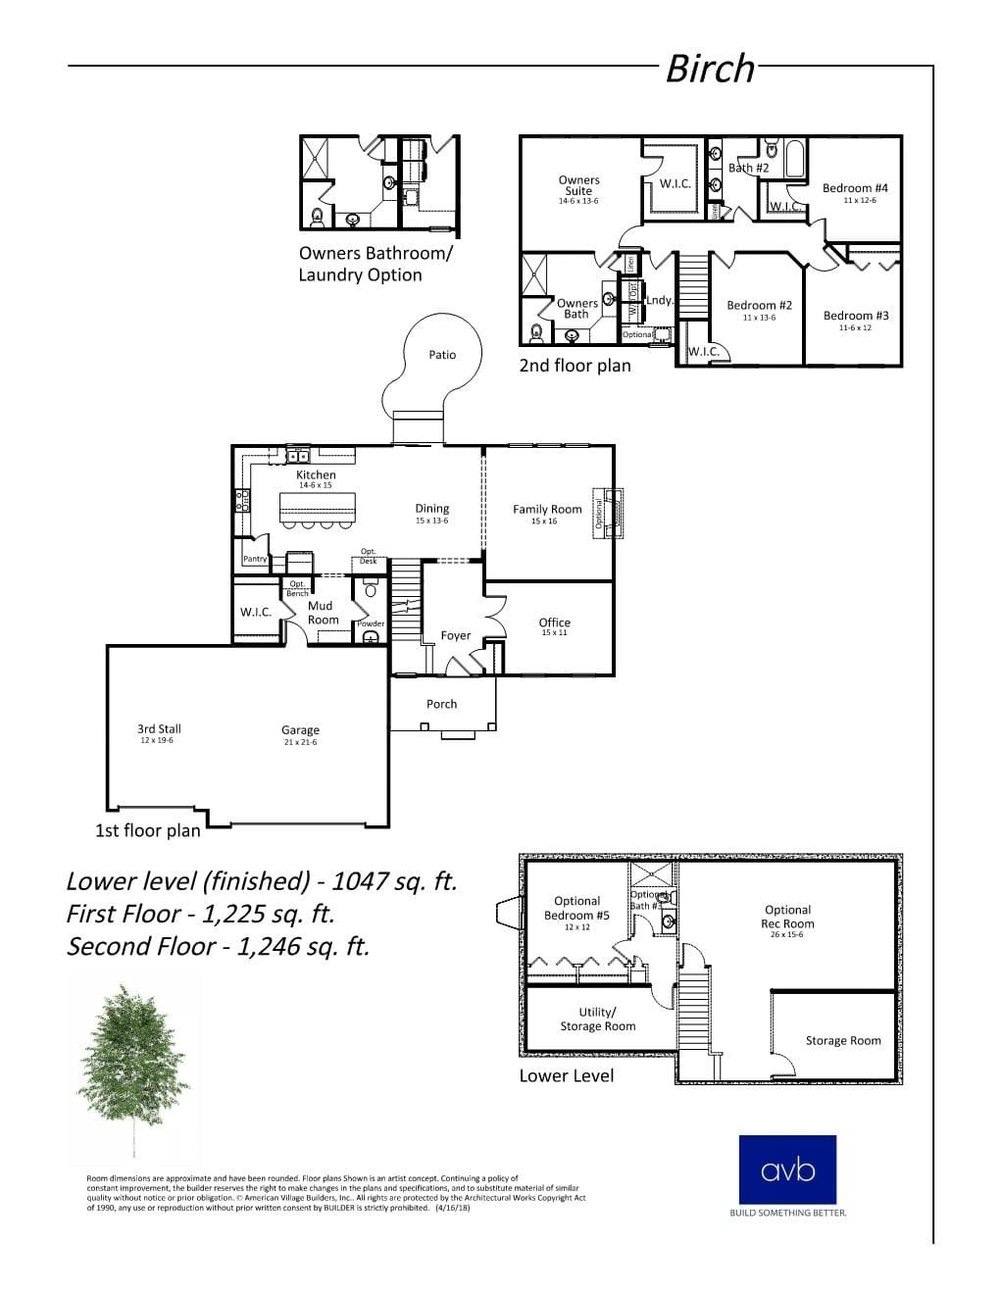 The Birch floor plan